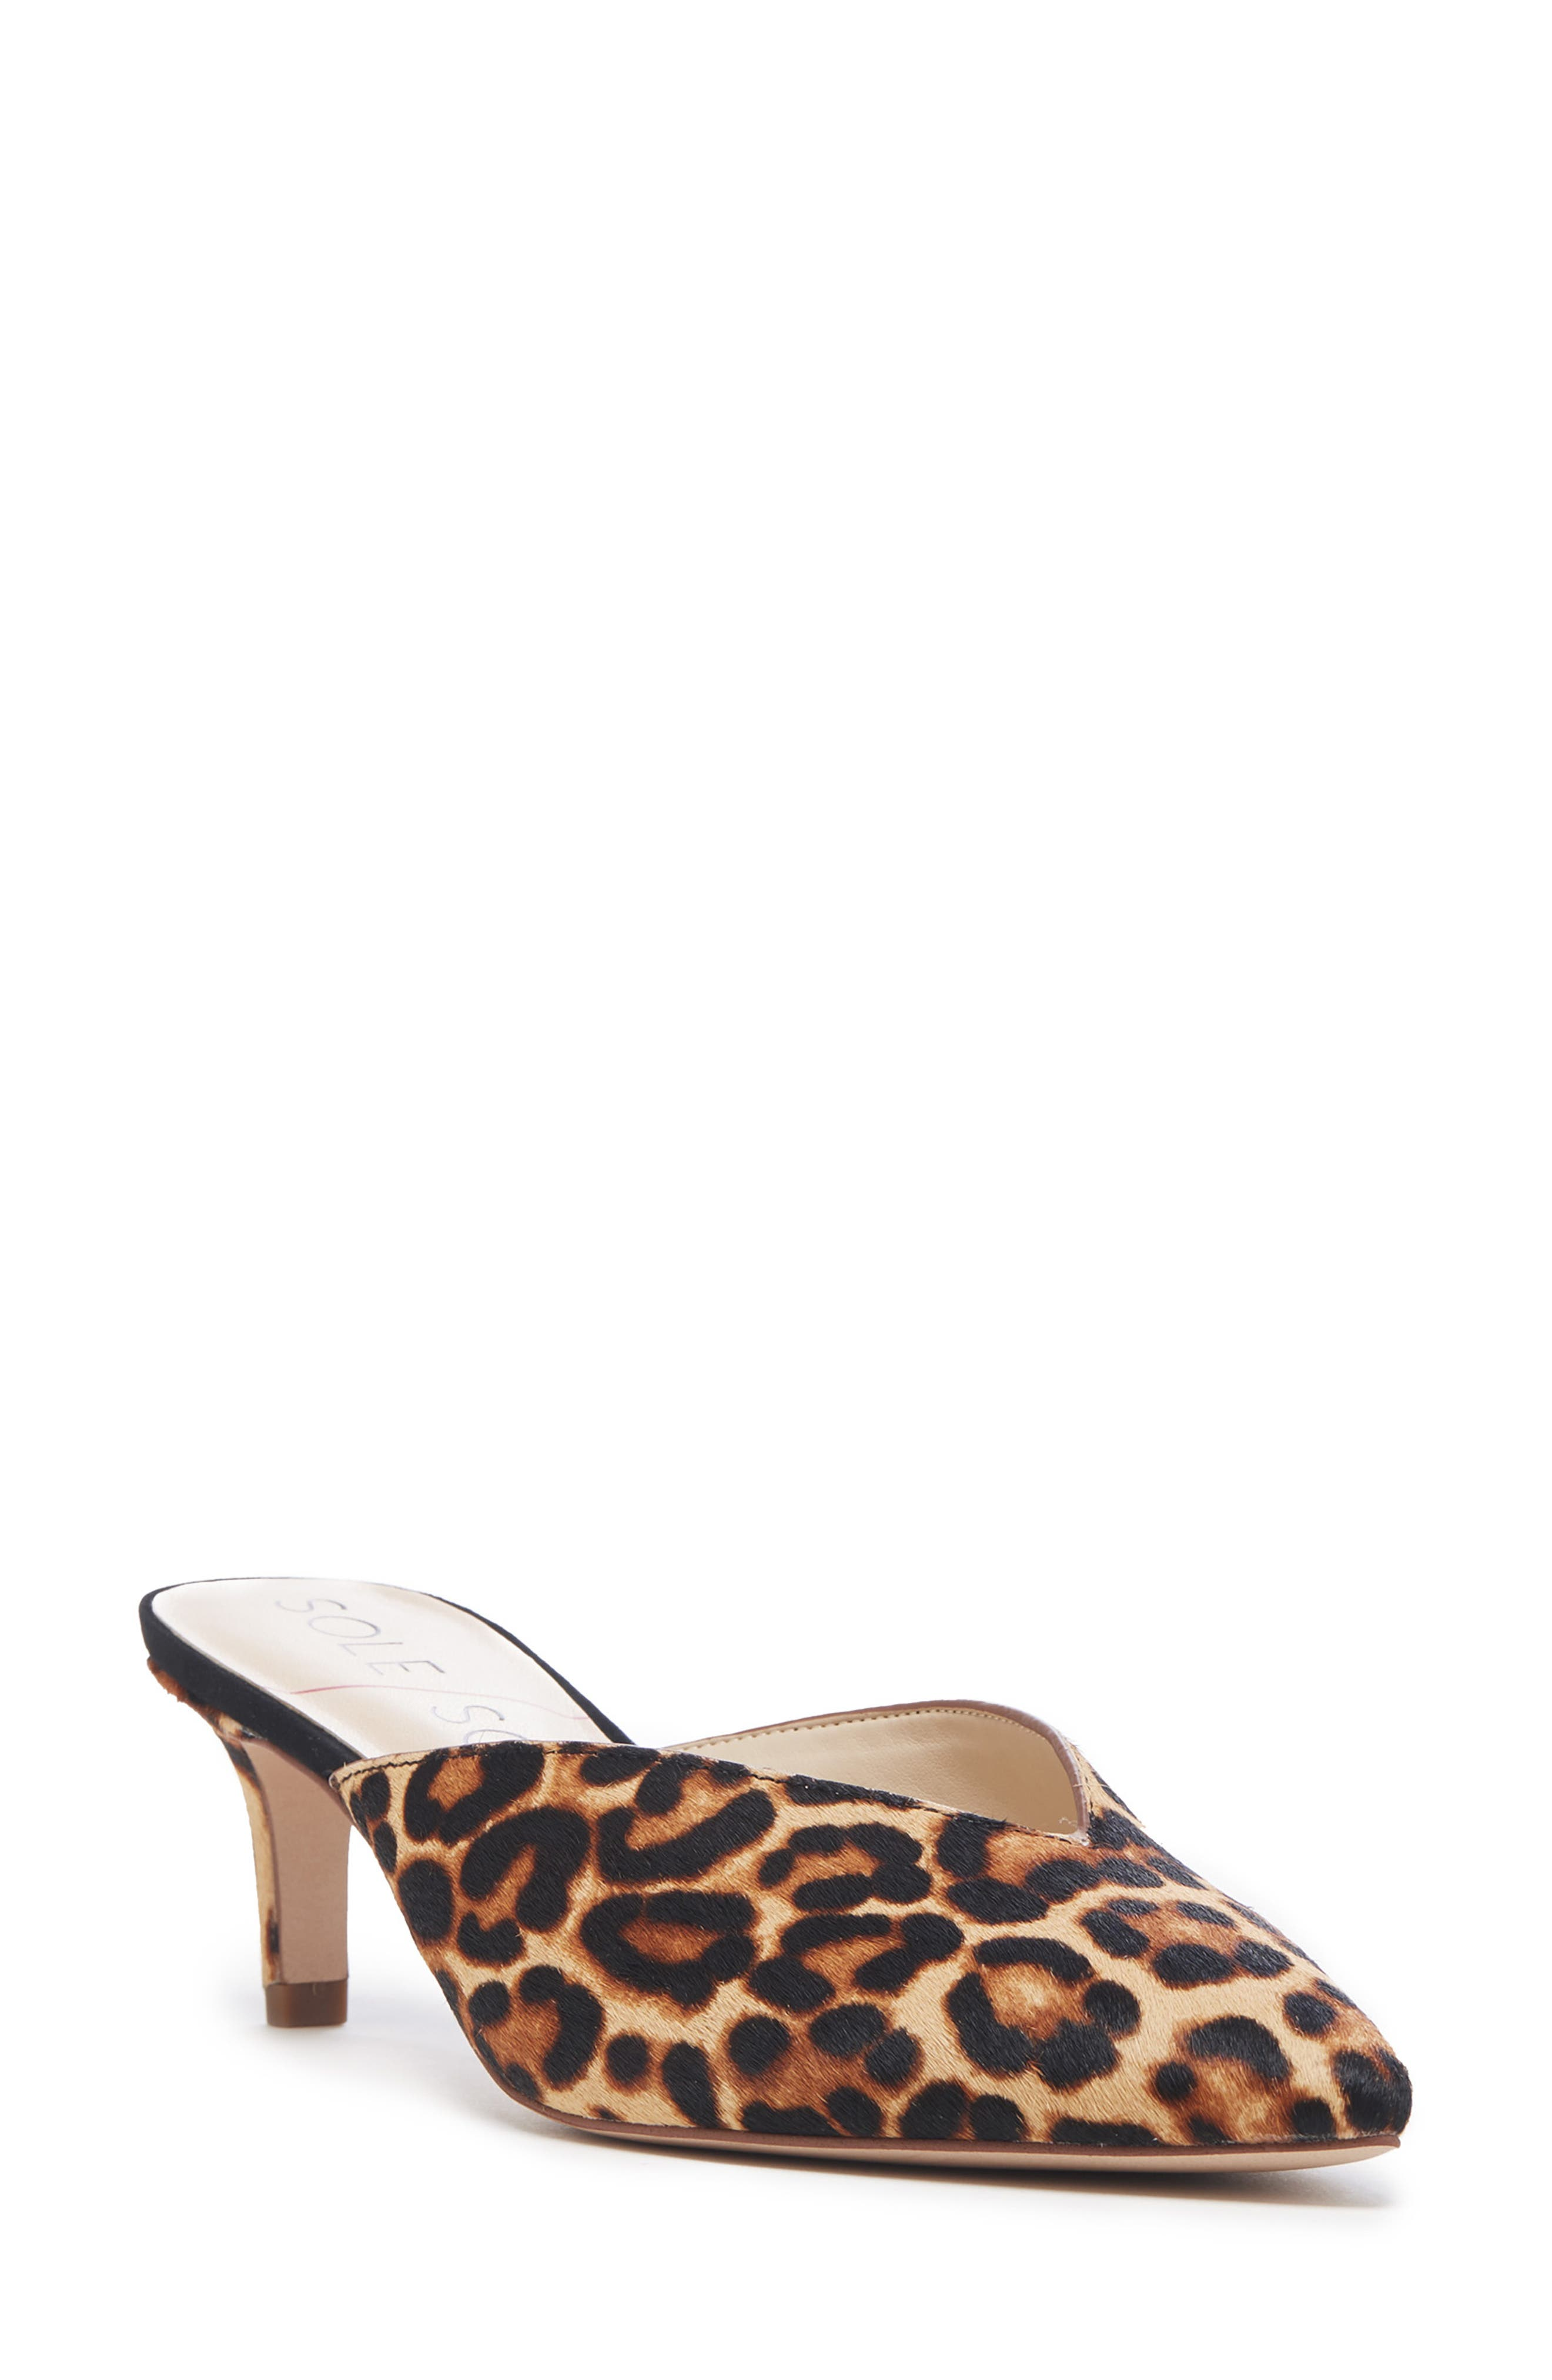 Sole Society Maleah Pointy Toe Mule, Brown